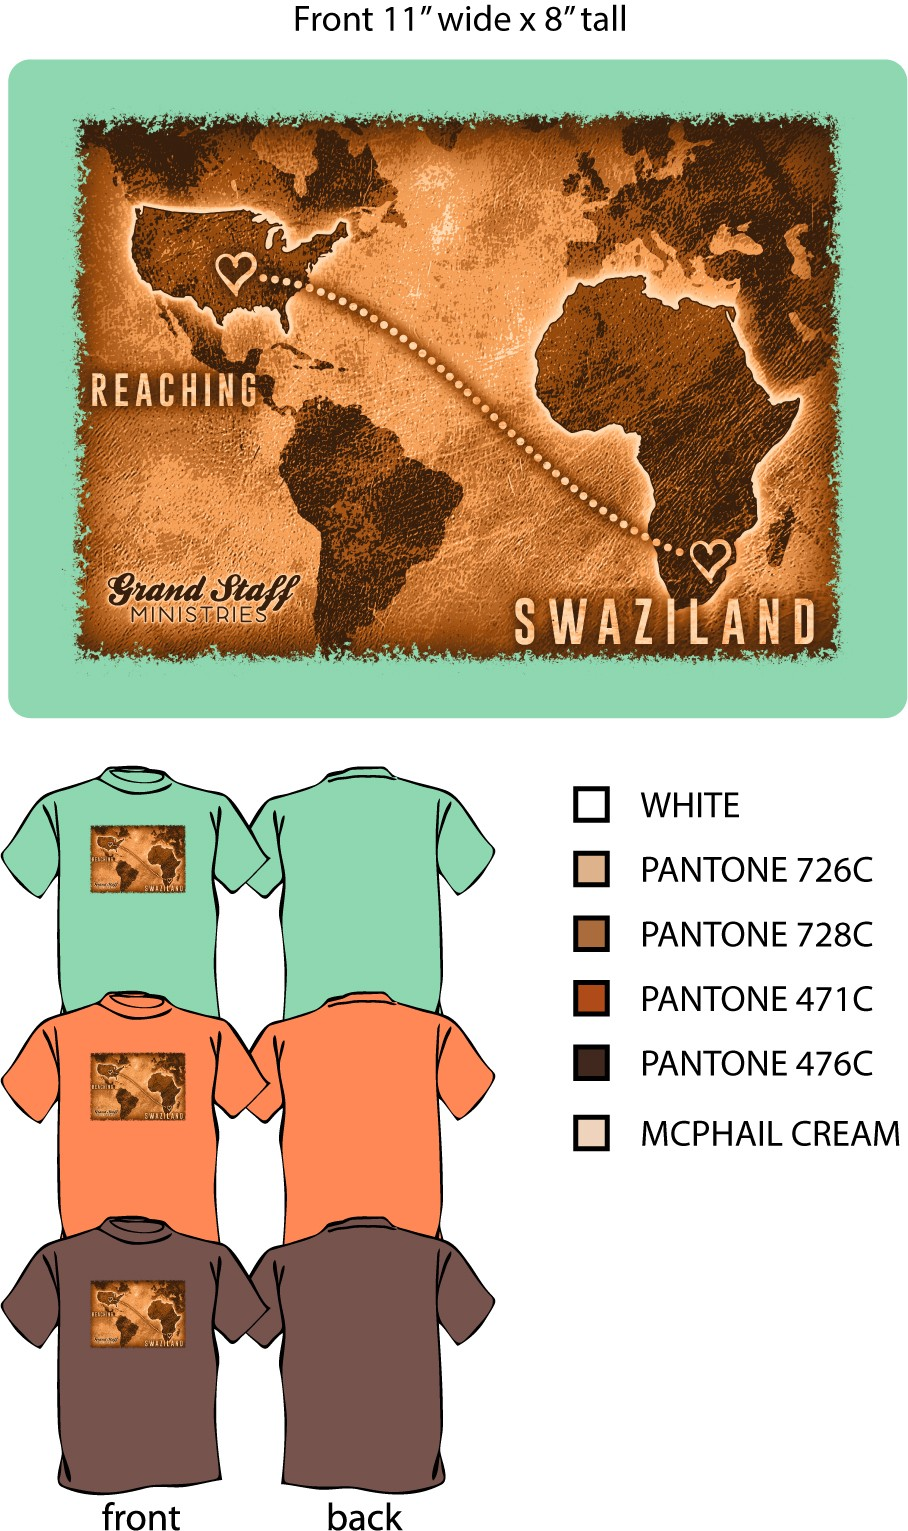 Reaching Swaziland Women's T-shirt, Peach